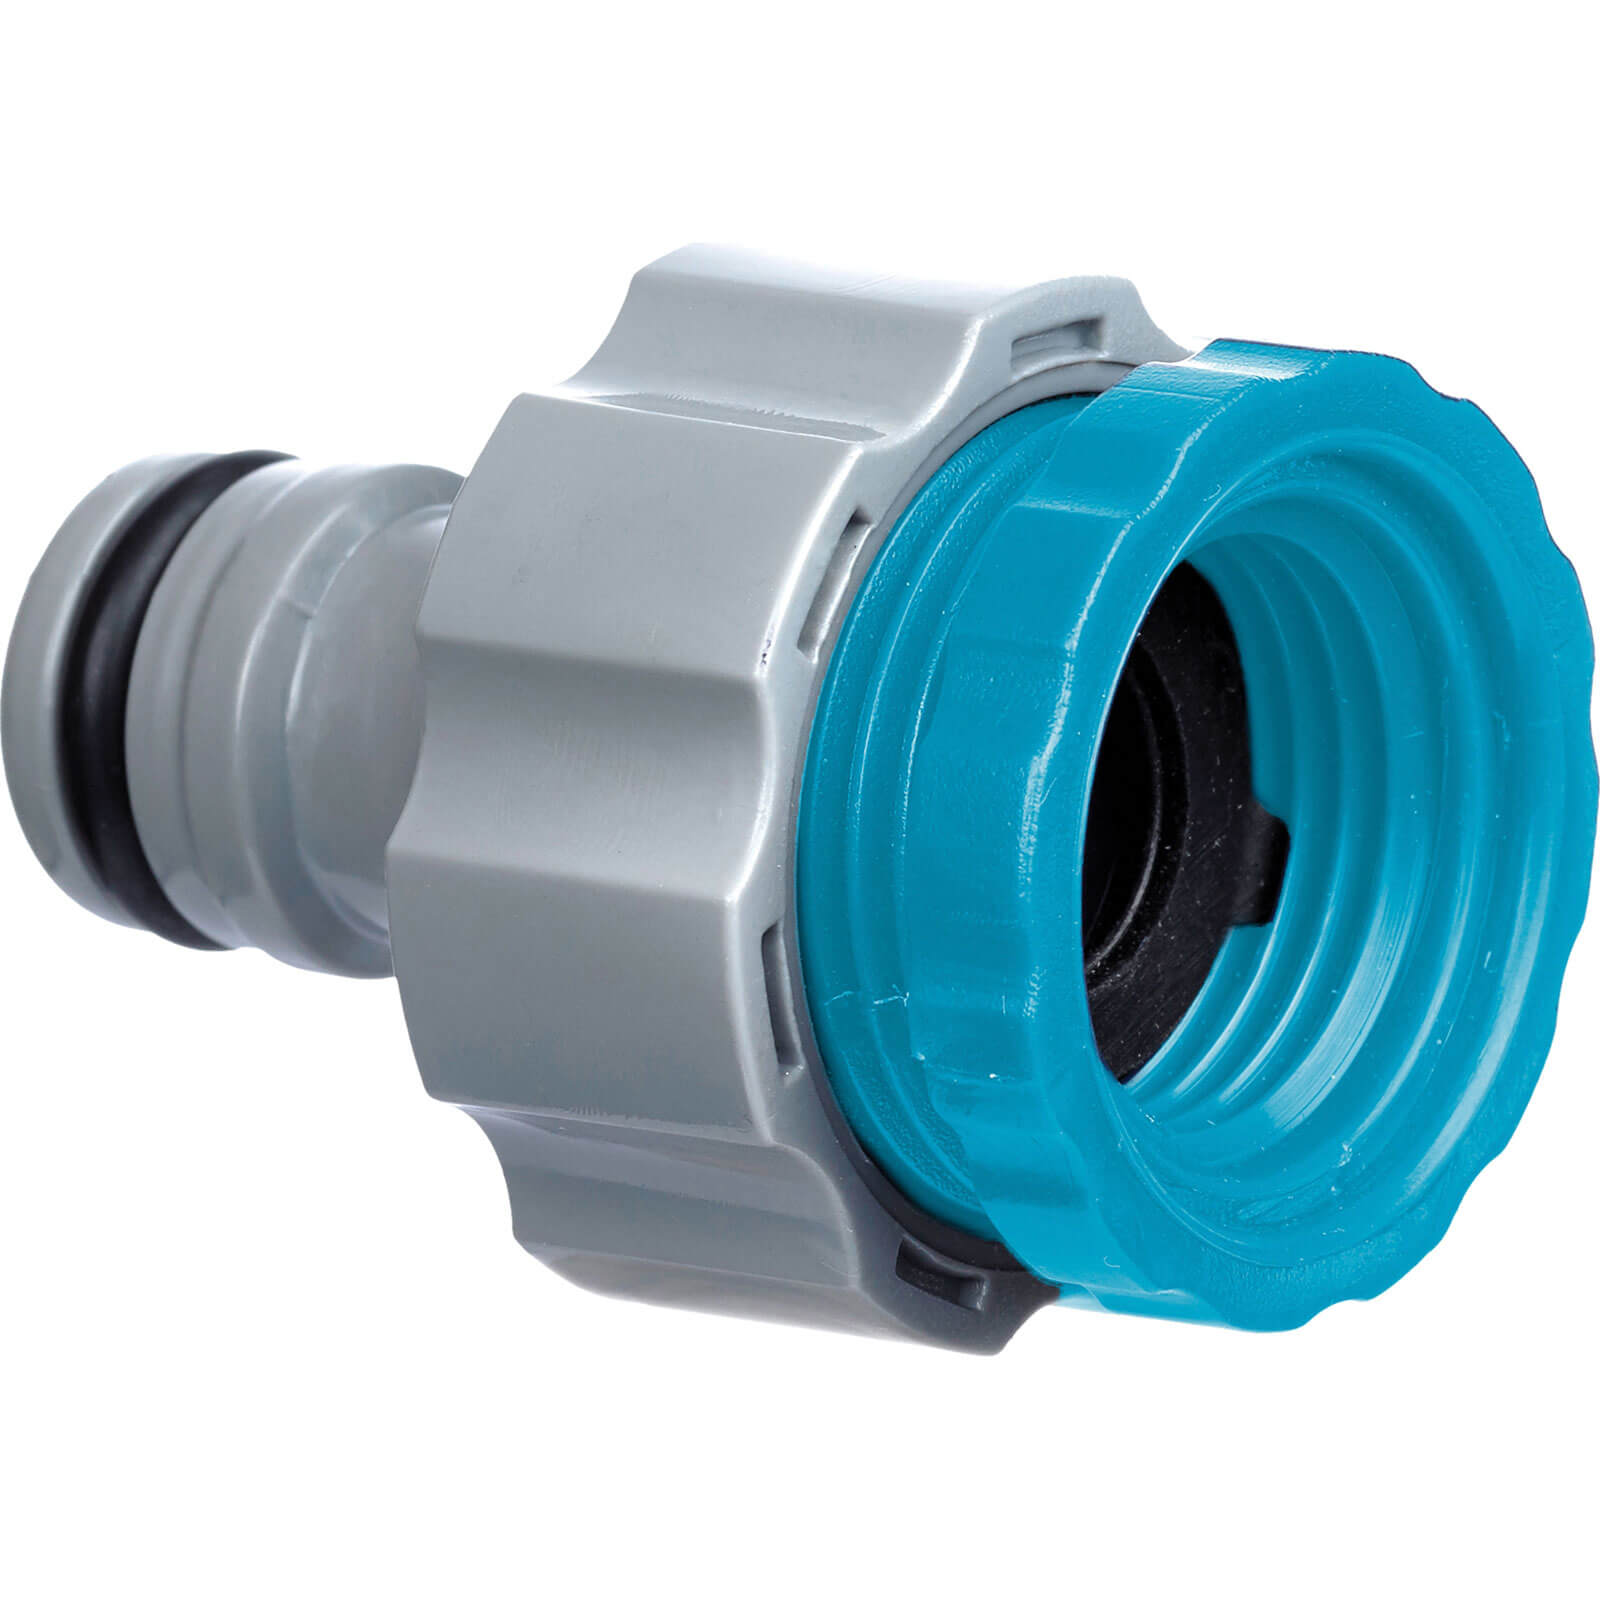 Image of Flopro Dual Fit Outside Tap Connector